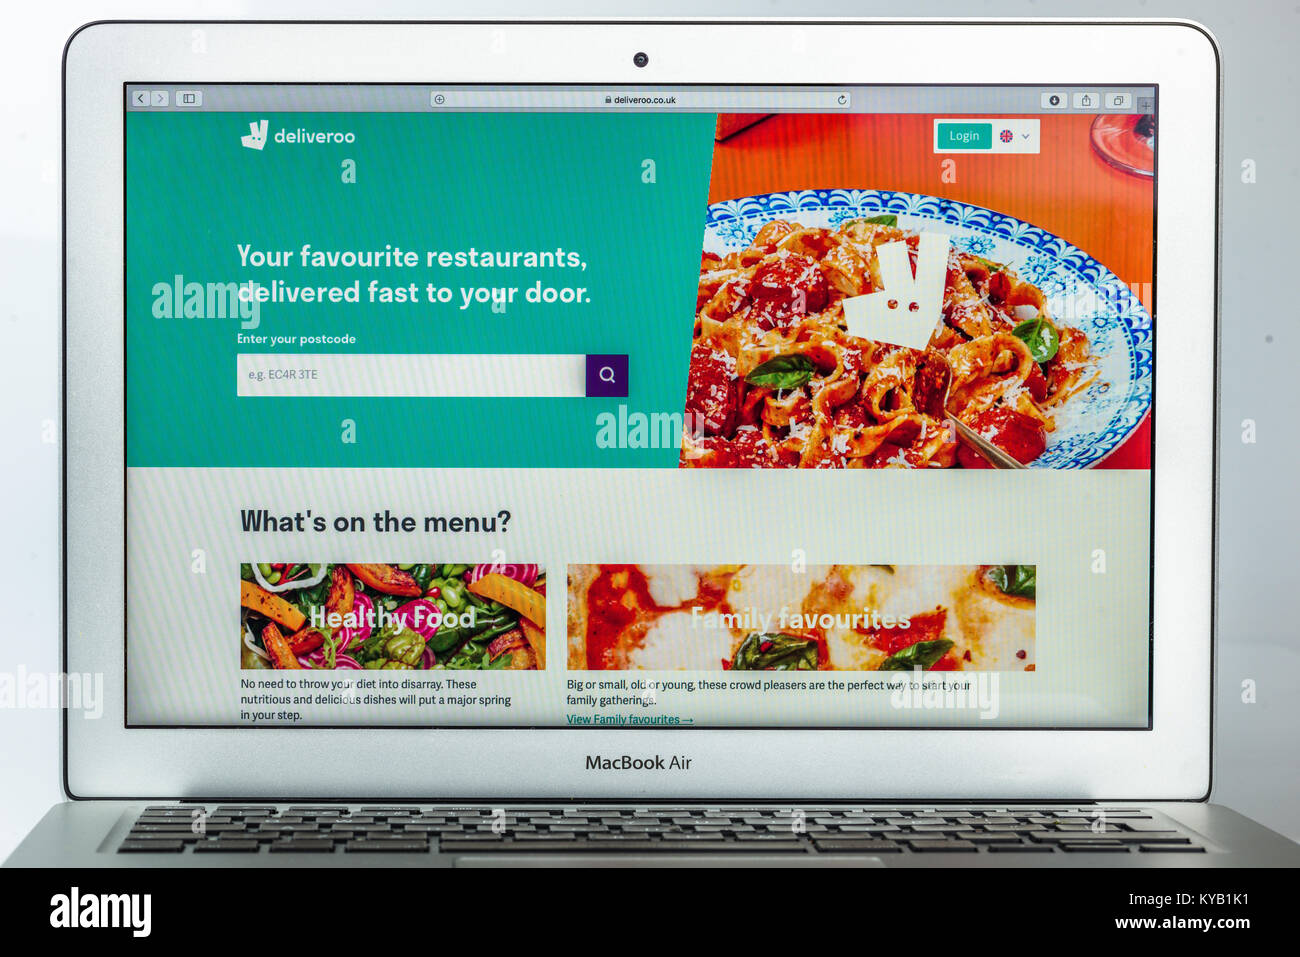 The homepage of the official website for Deliveroo - the British online food delivery company. - Stock Image